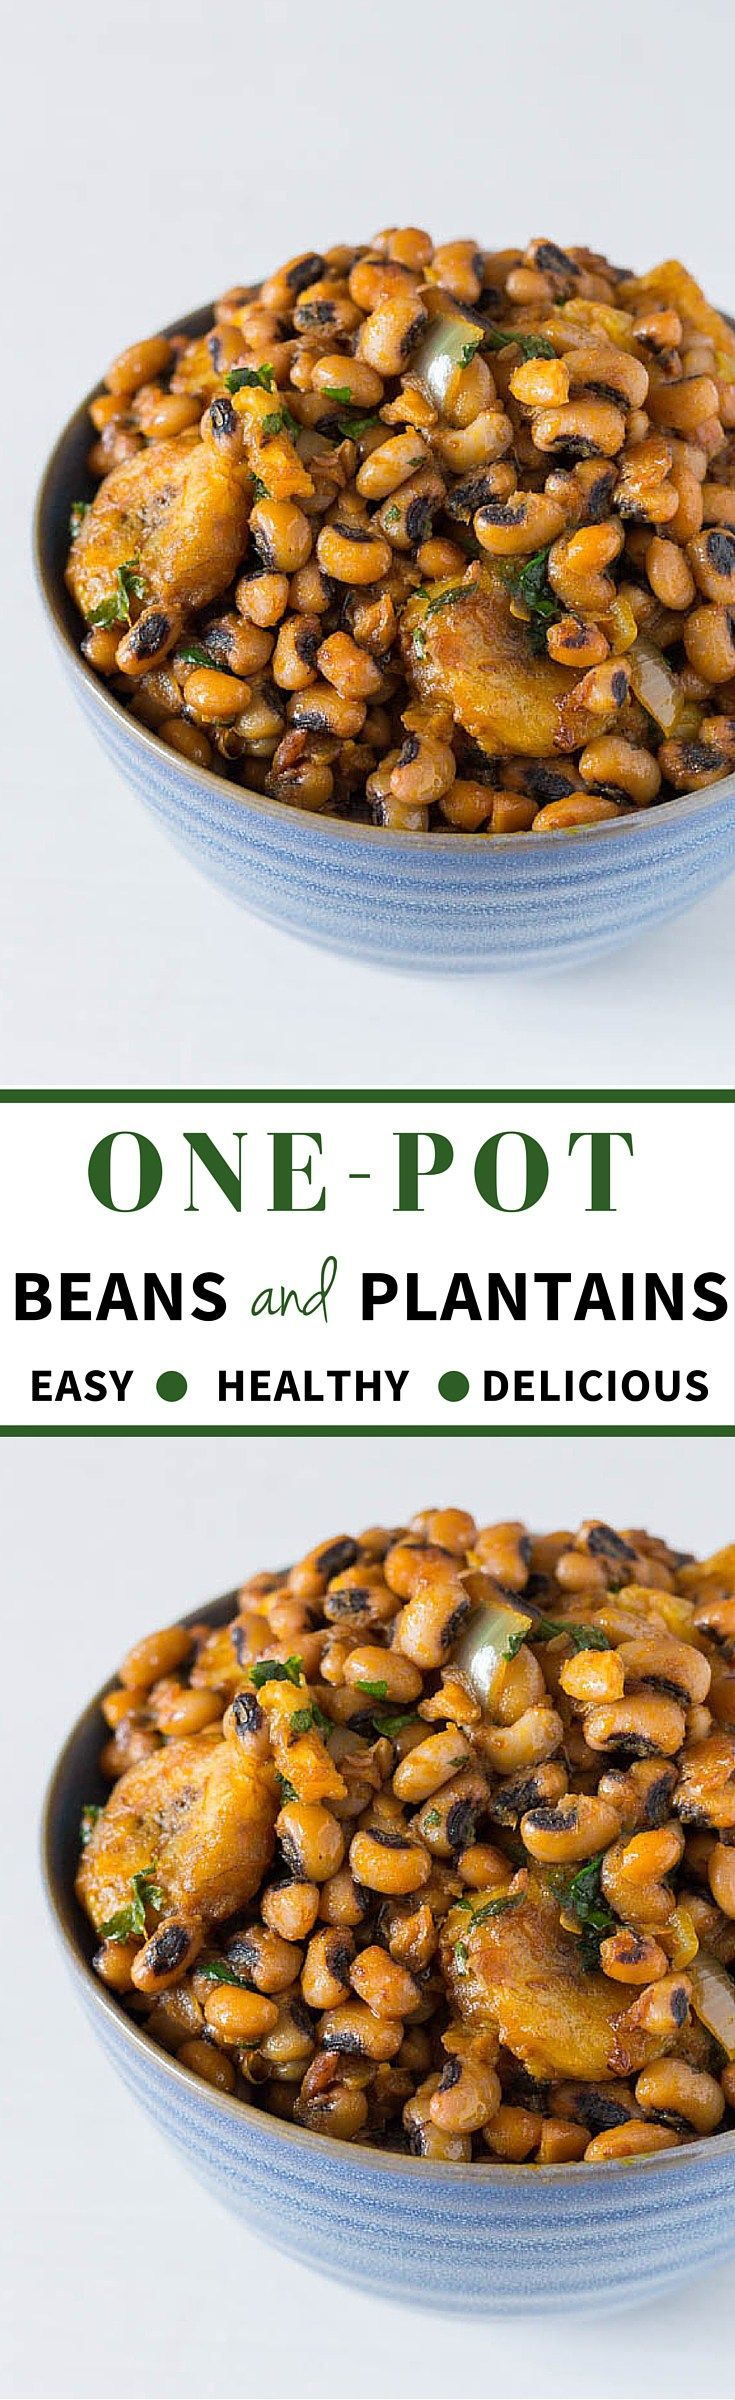 One Pot Beans and Plantains Recipe. black-eyed beans and plantains recipe with palm oil (bean and plantain pottage) is finger-licking street food at its best. - recipesfromapantry.com  { African recipe, gluten-free recipe, black-eyed bean recipe}